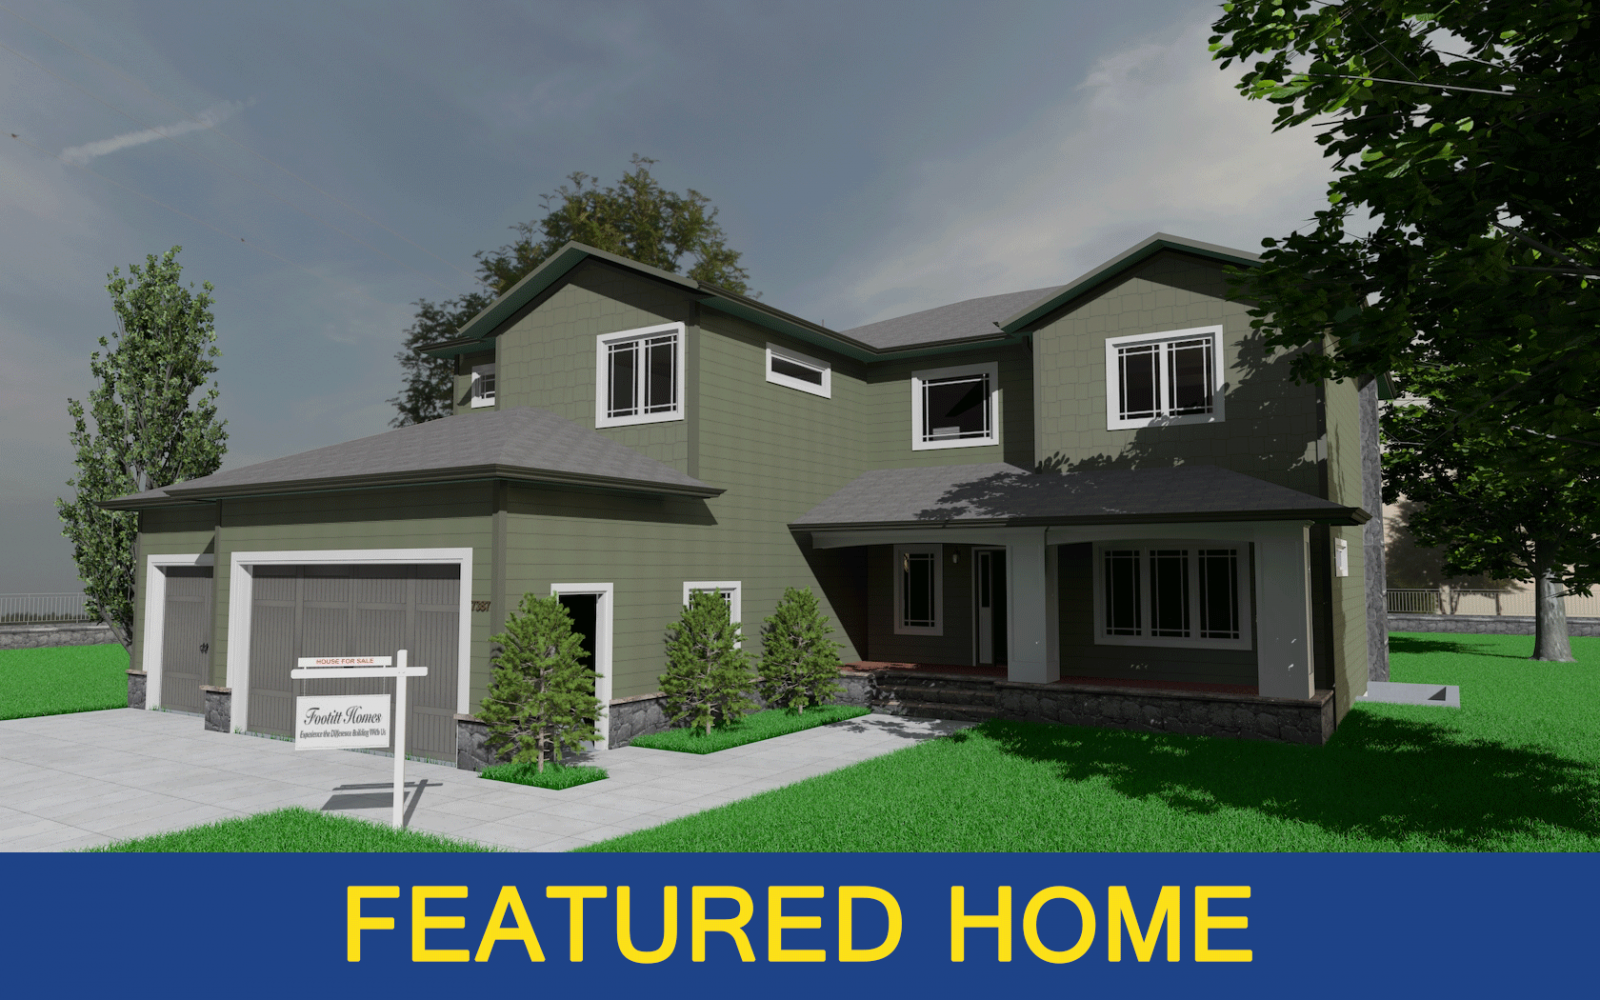 Home Builders Association Of Fargo Moorhead